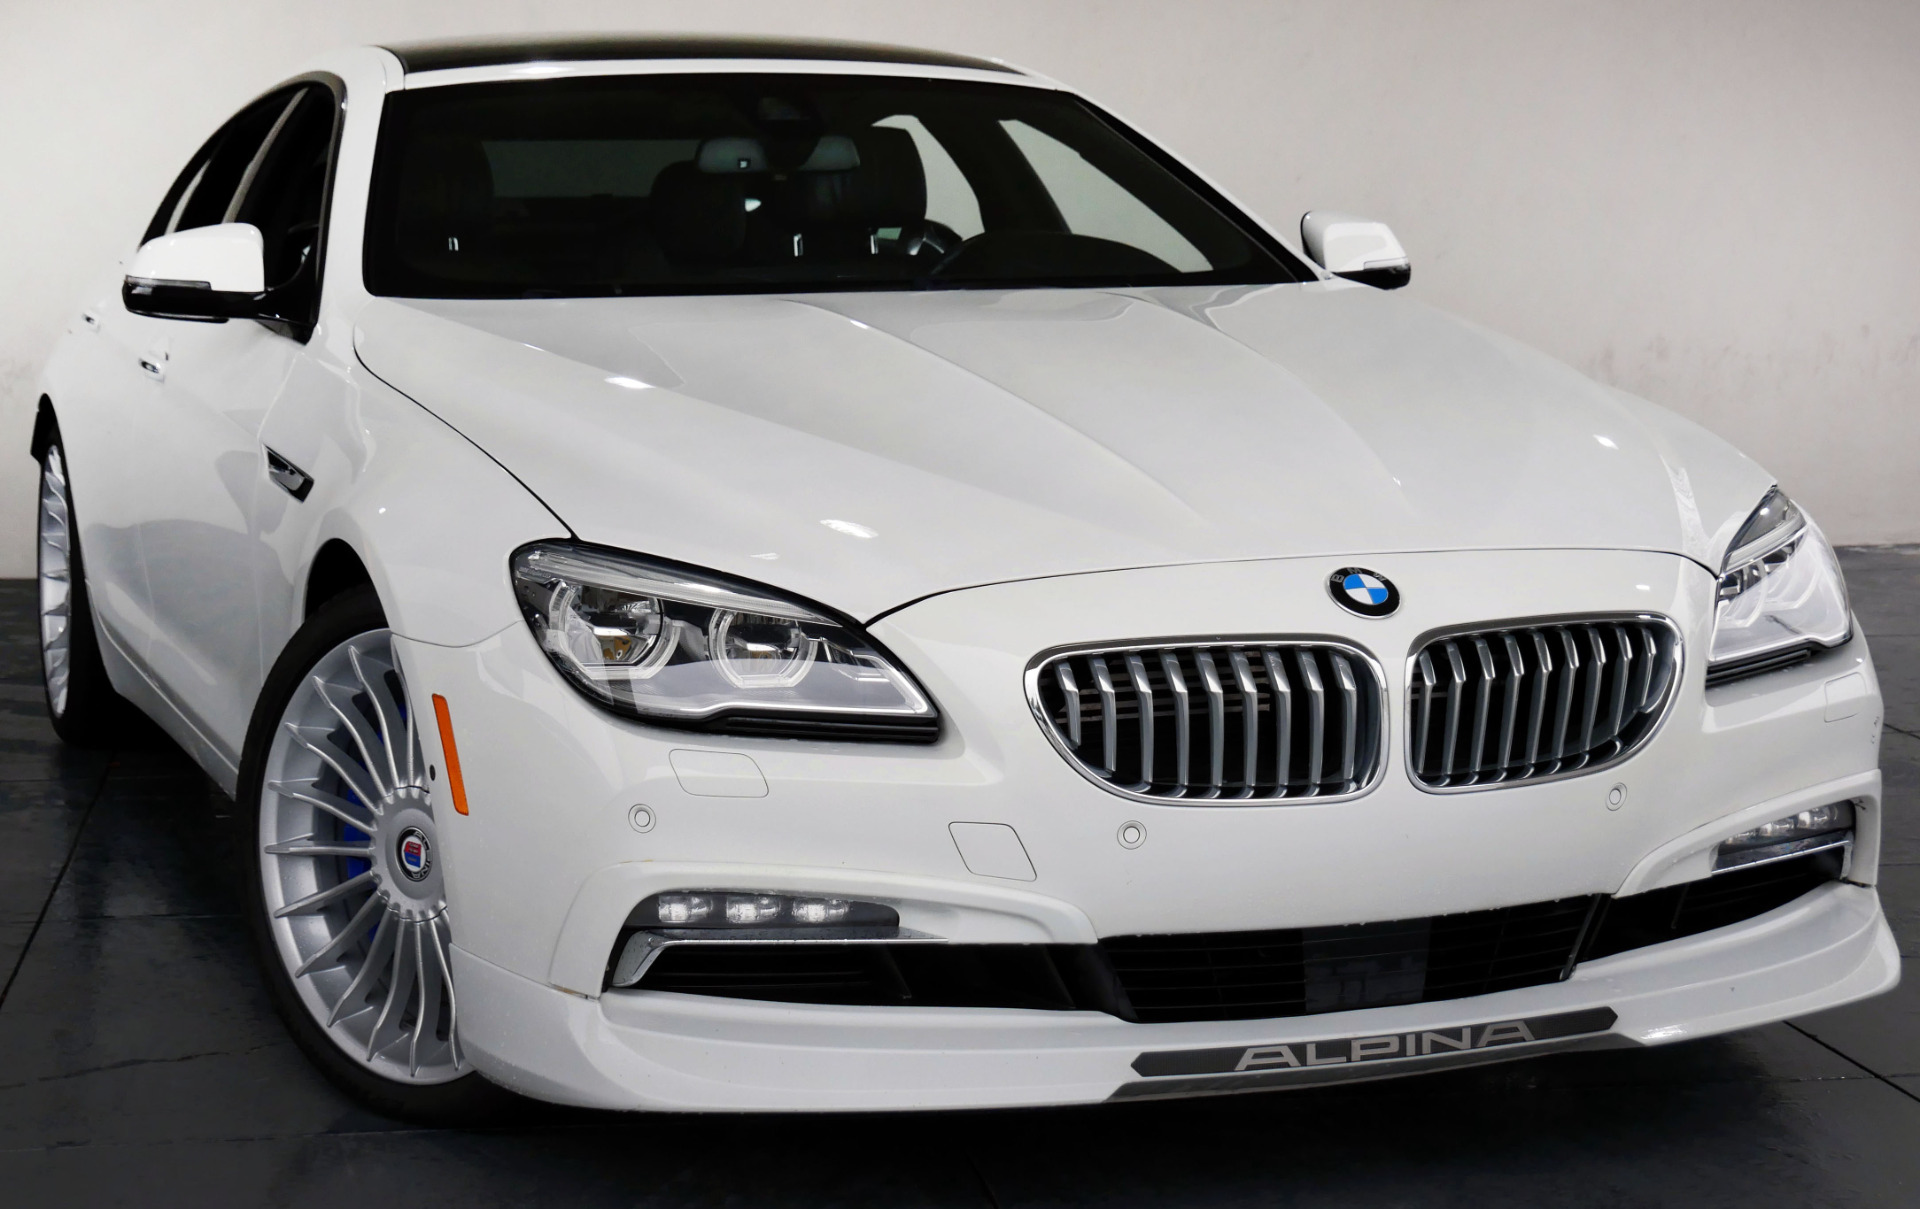 2017 BMW 6 Series ALPINA B6